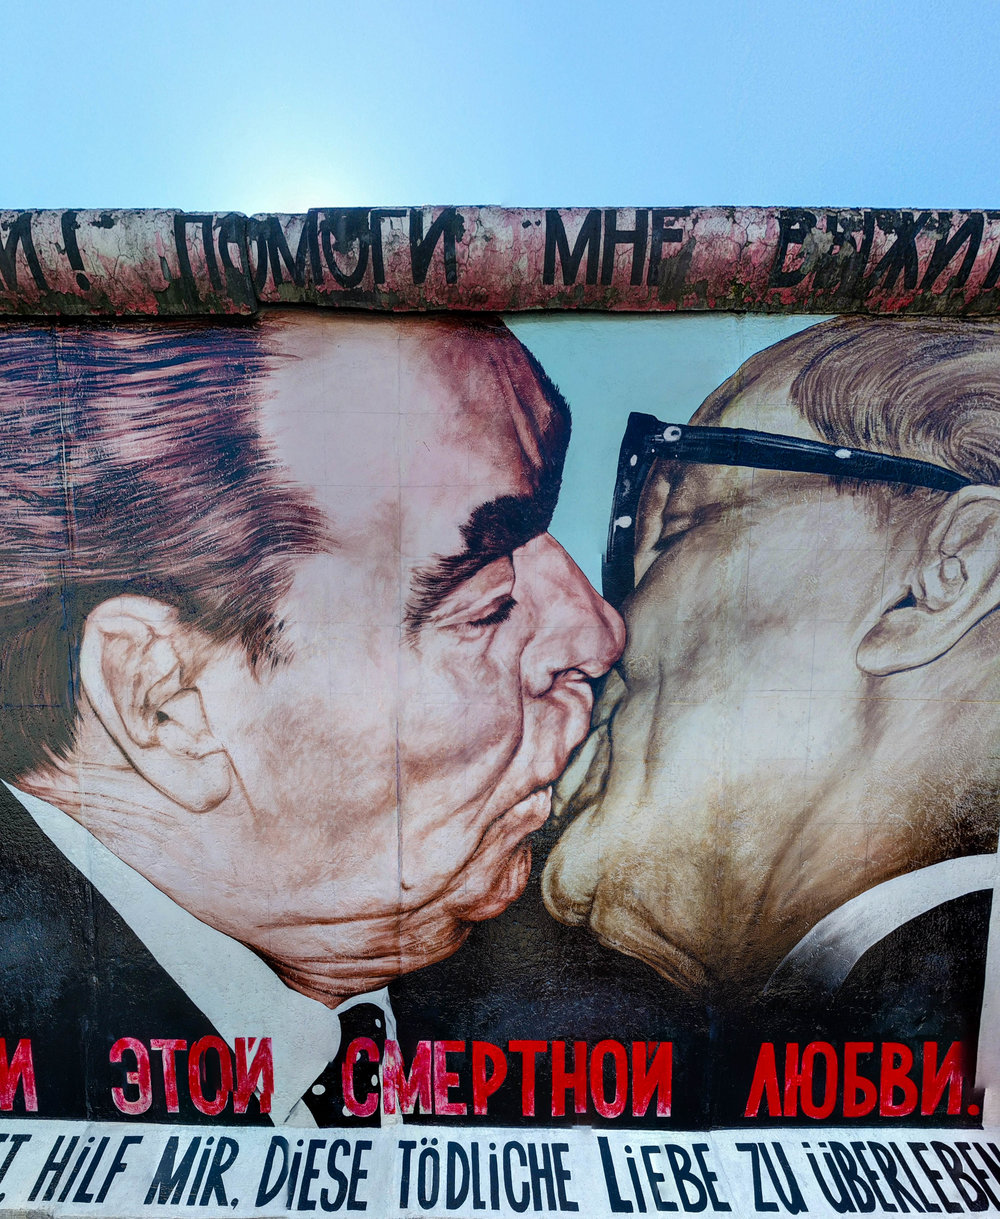 East Side Gallery. Berlin, Germany, 2016